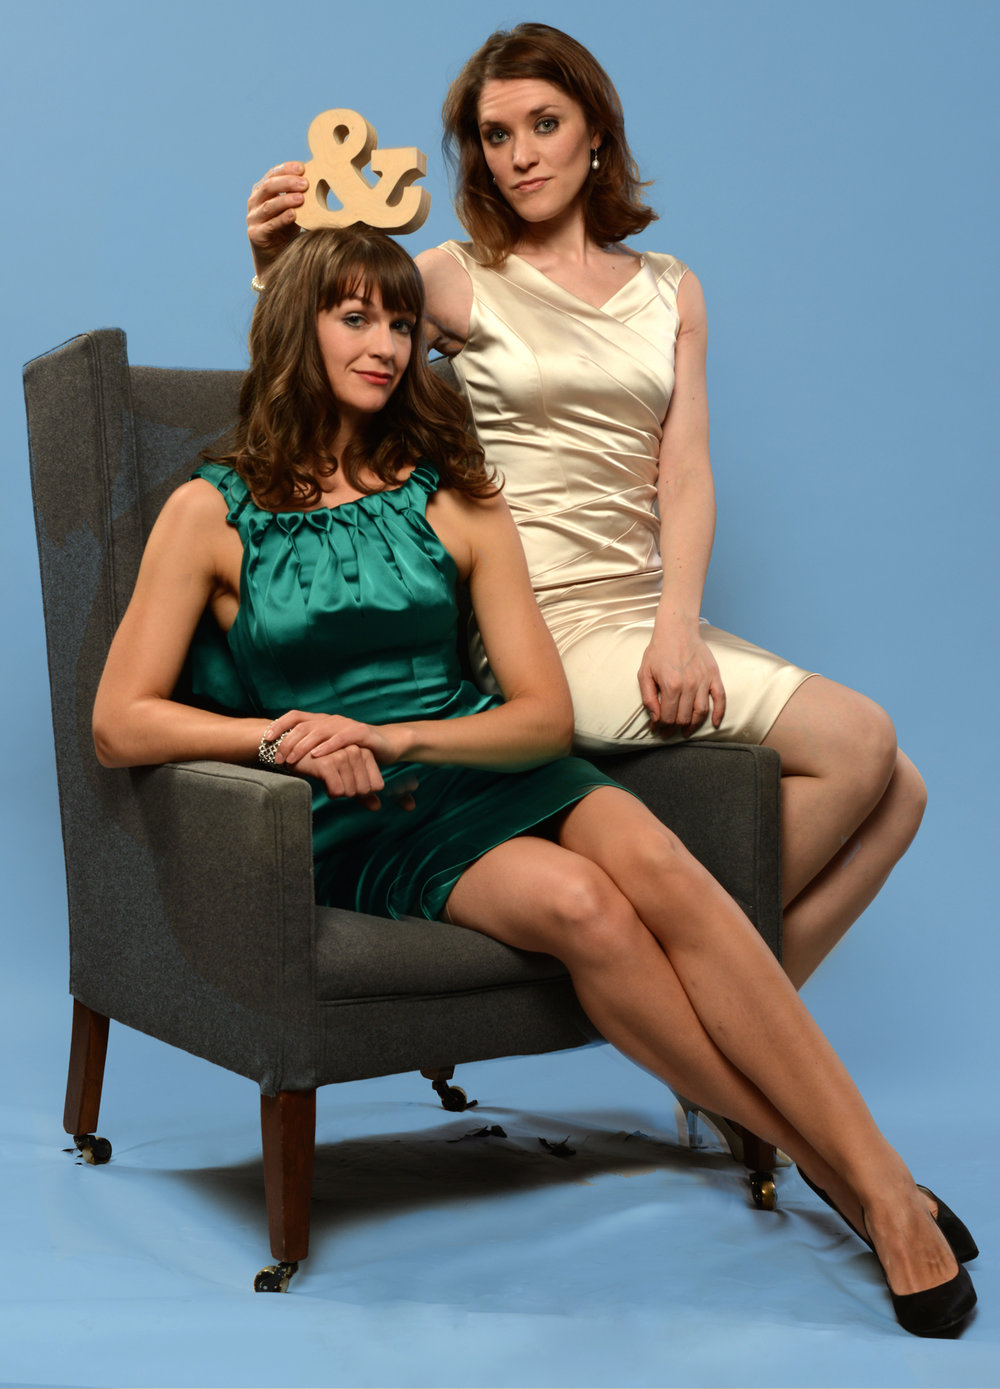 C&P press photo - chair - cropped.jpg